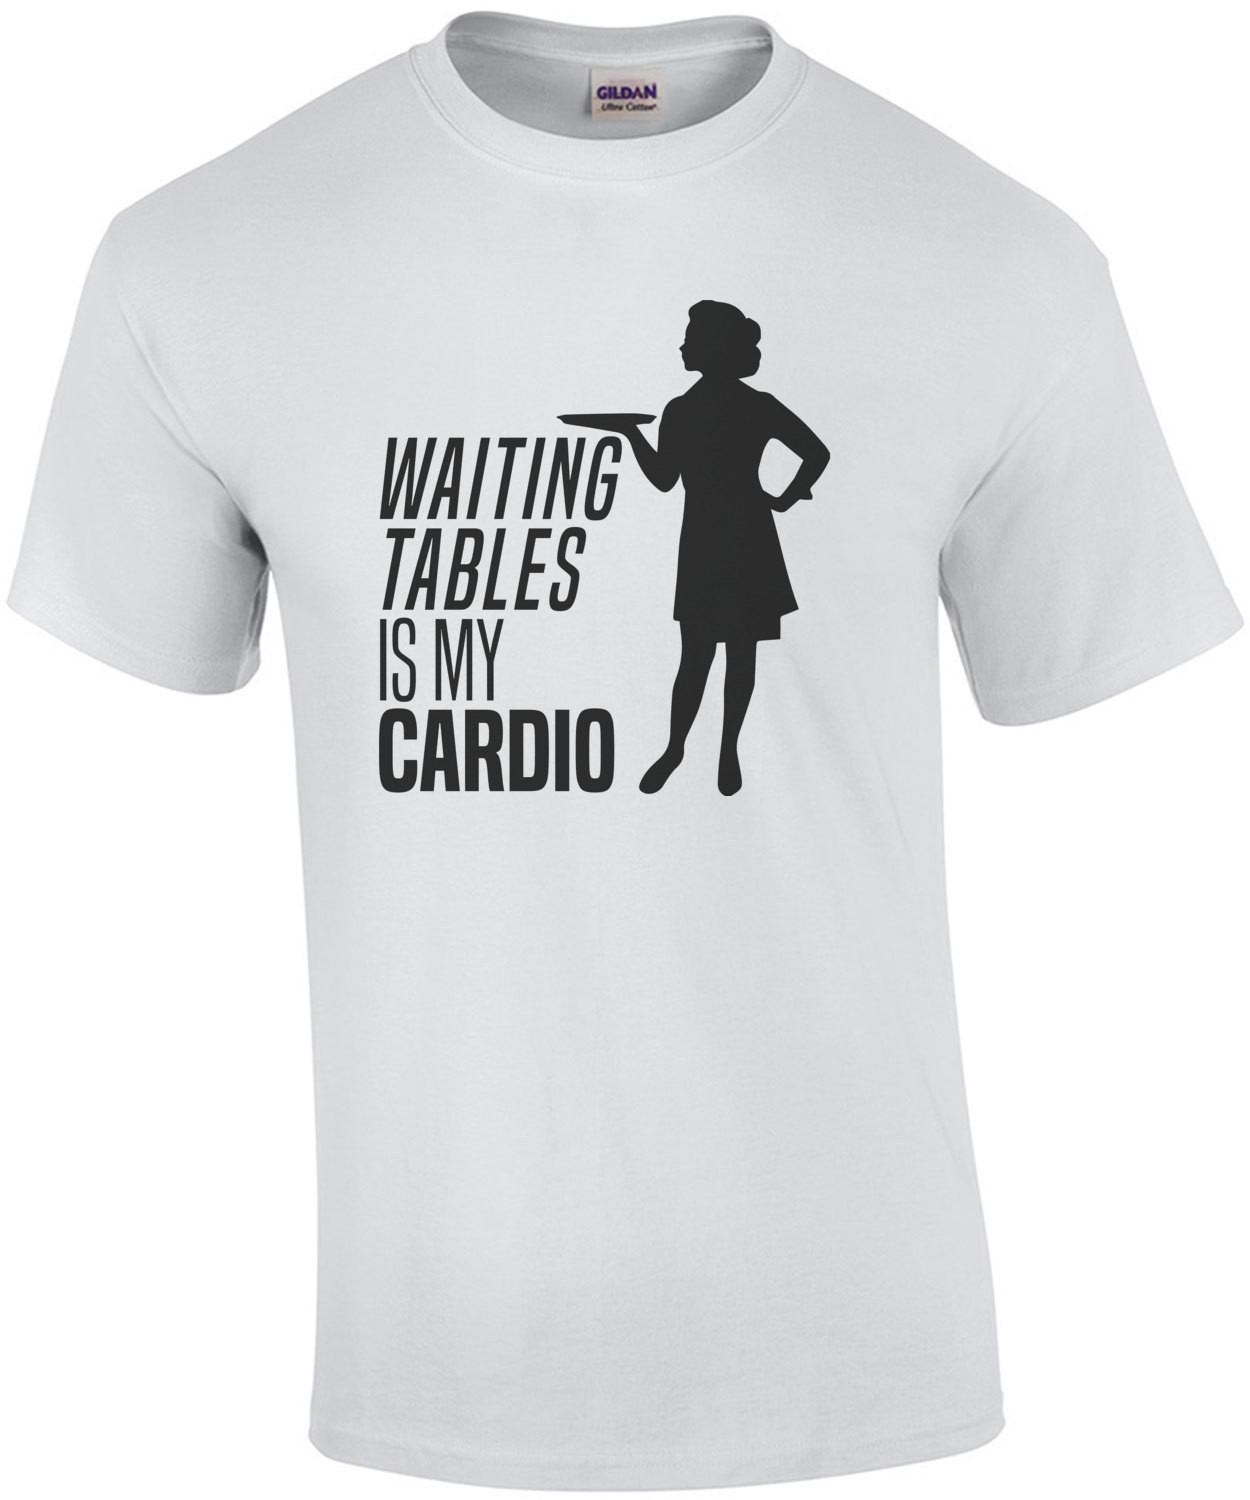 Waiting tables is my cardio - funny waitressing t-shirt - funny server t-shirt